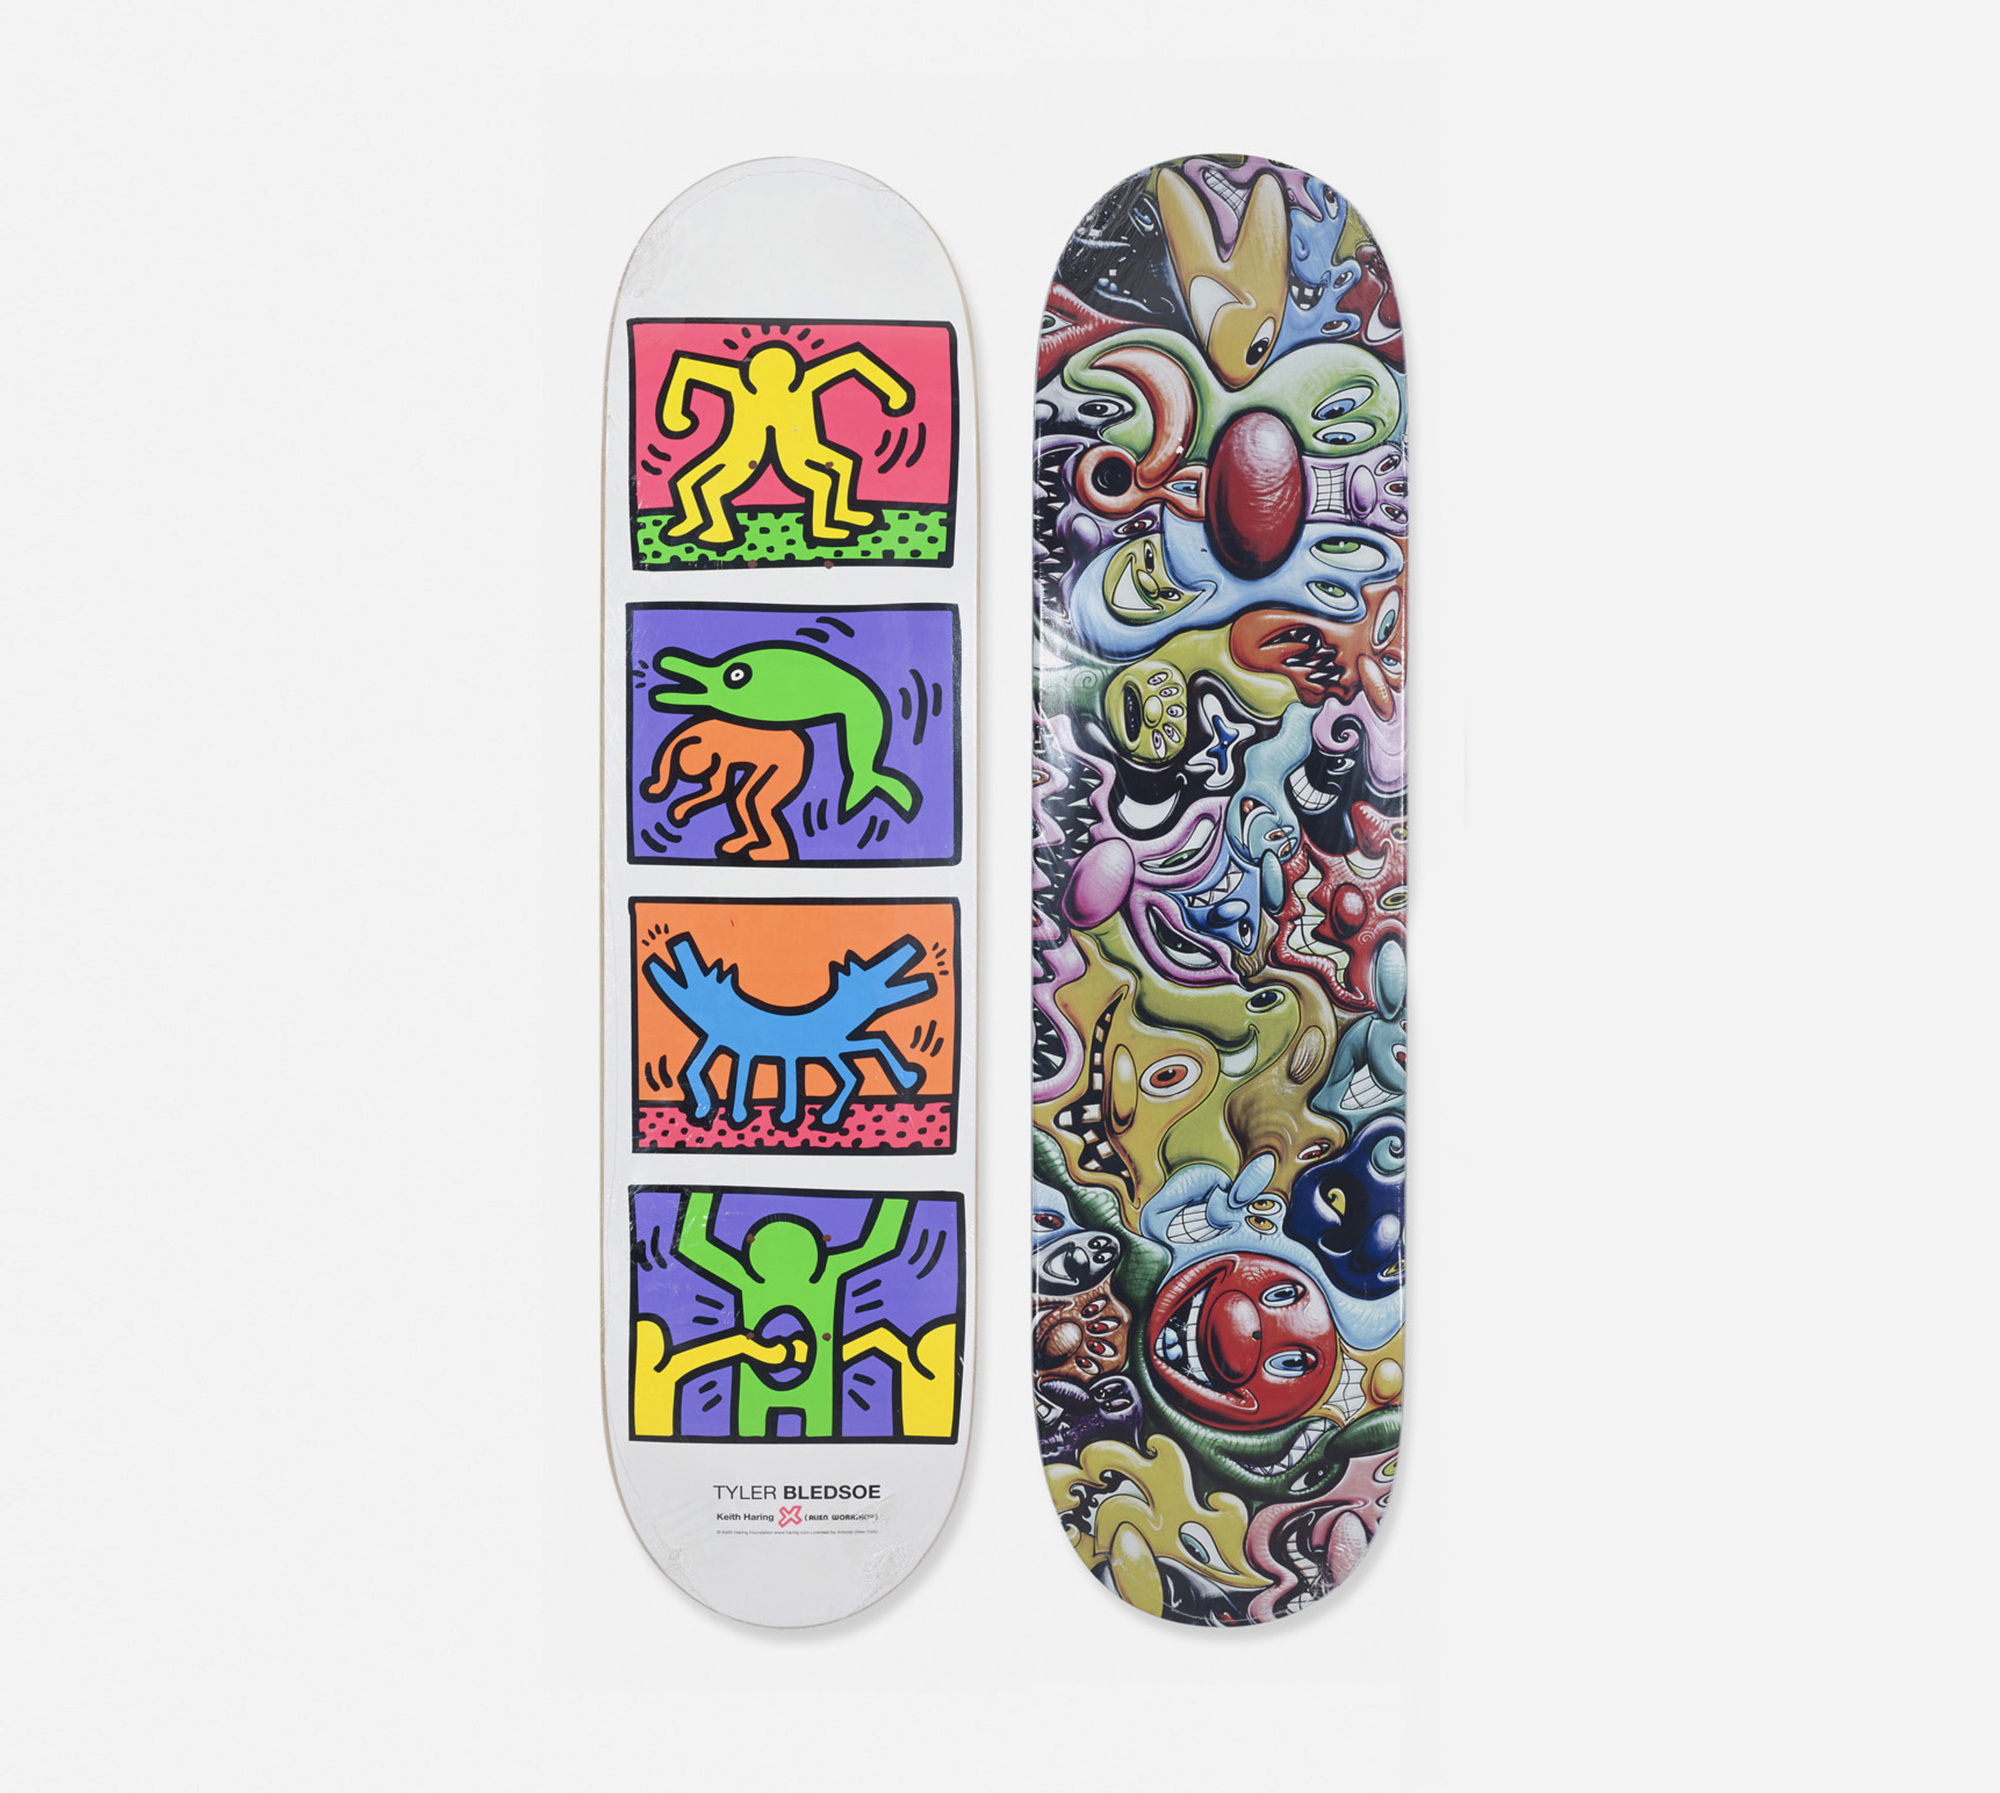 320: Keith Haring and Kenny Scharf / skateboard decks, pair (1 of 1)